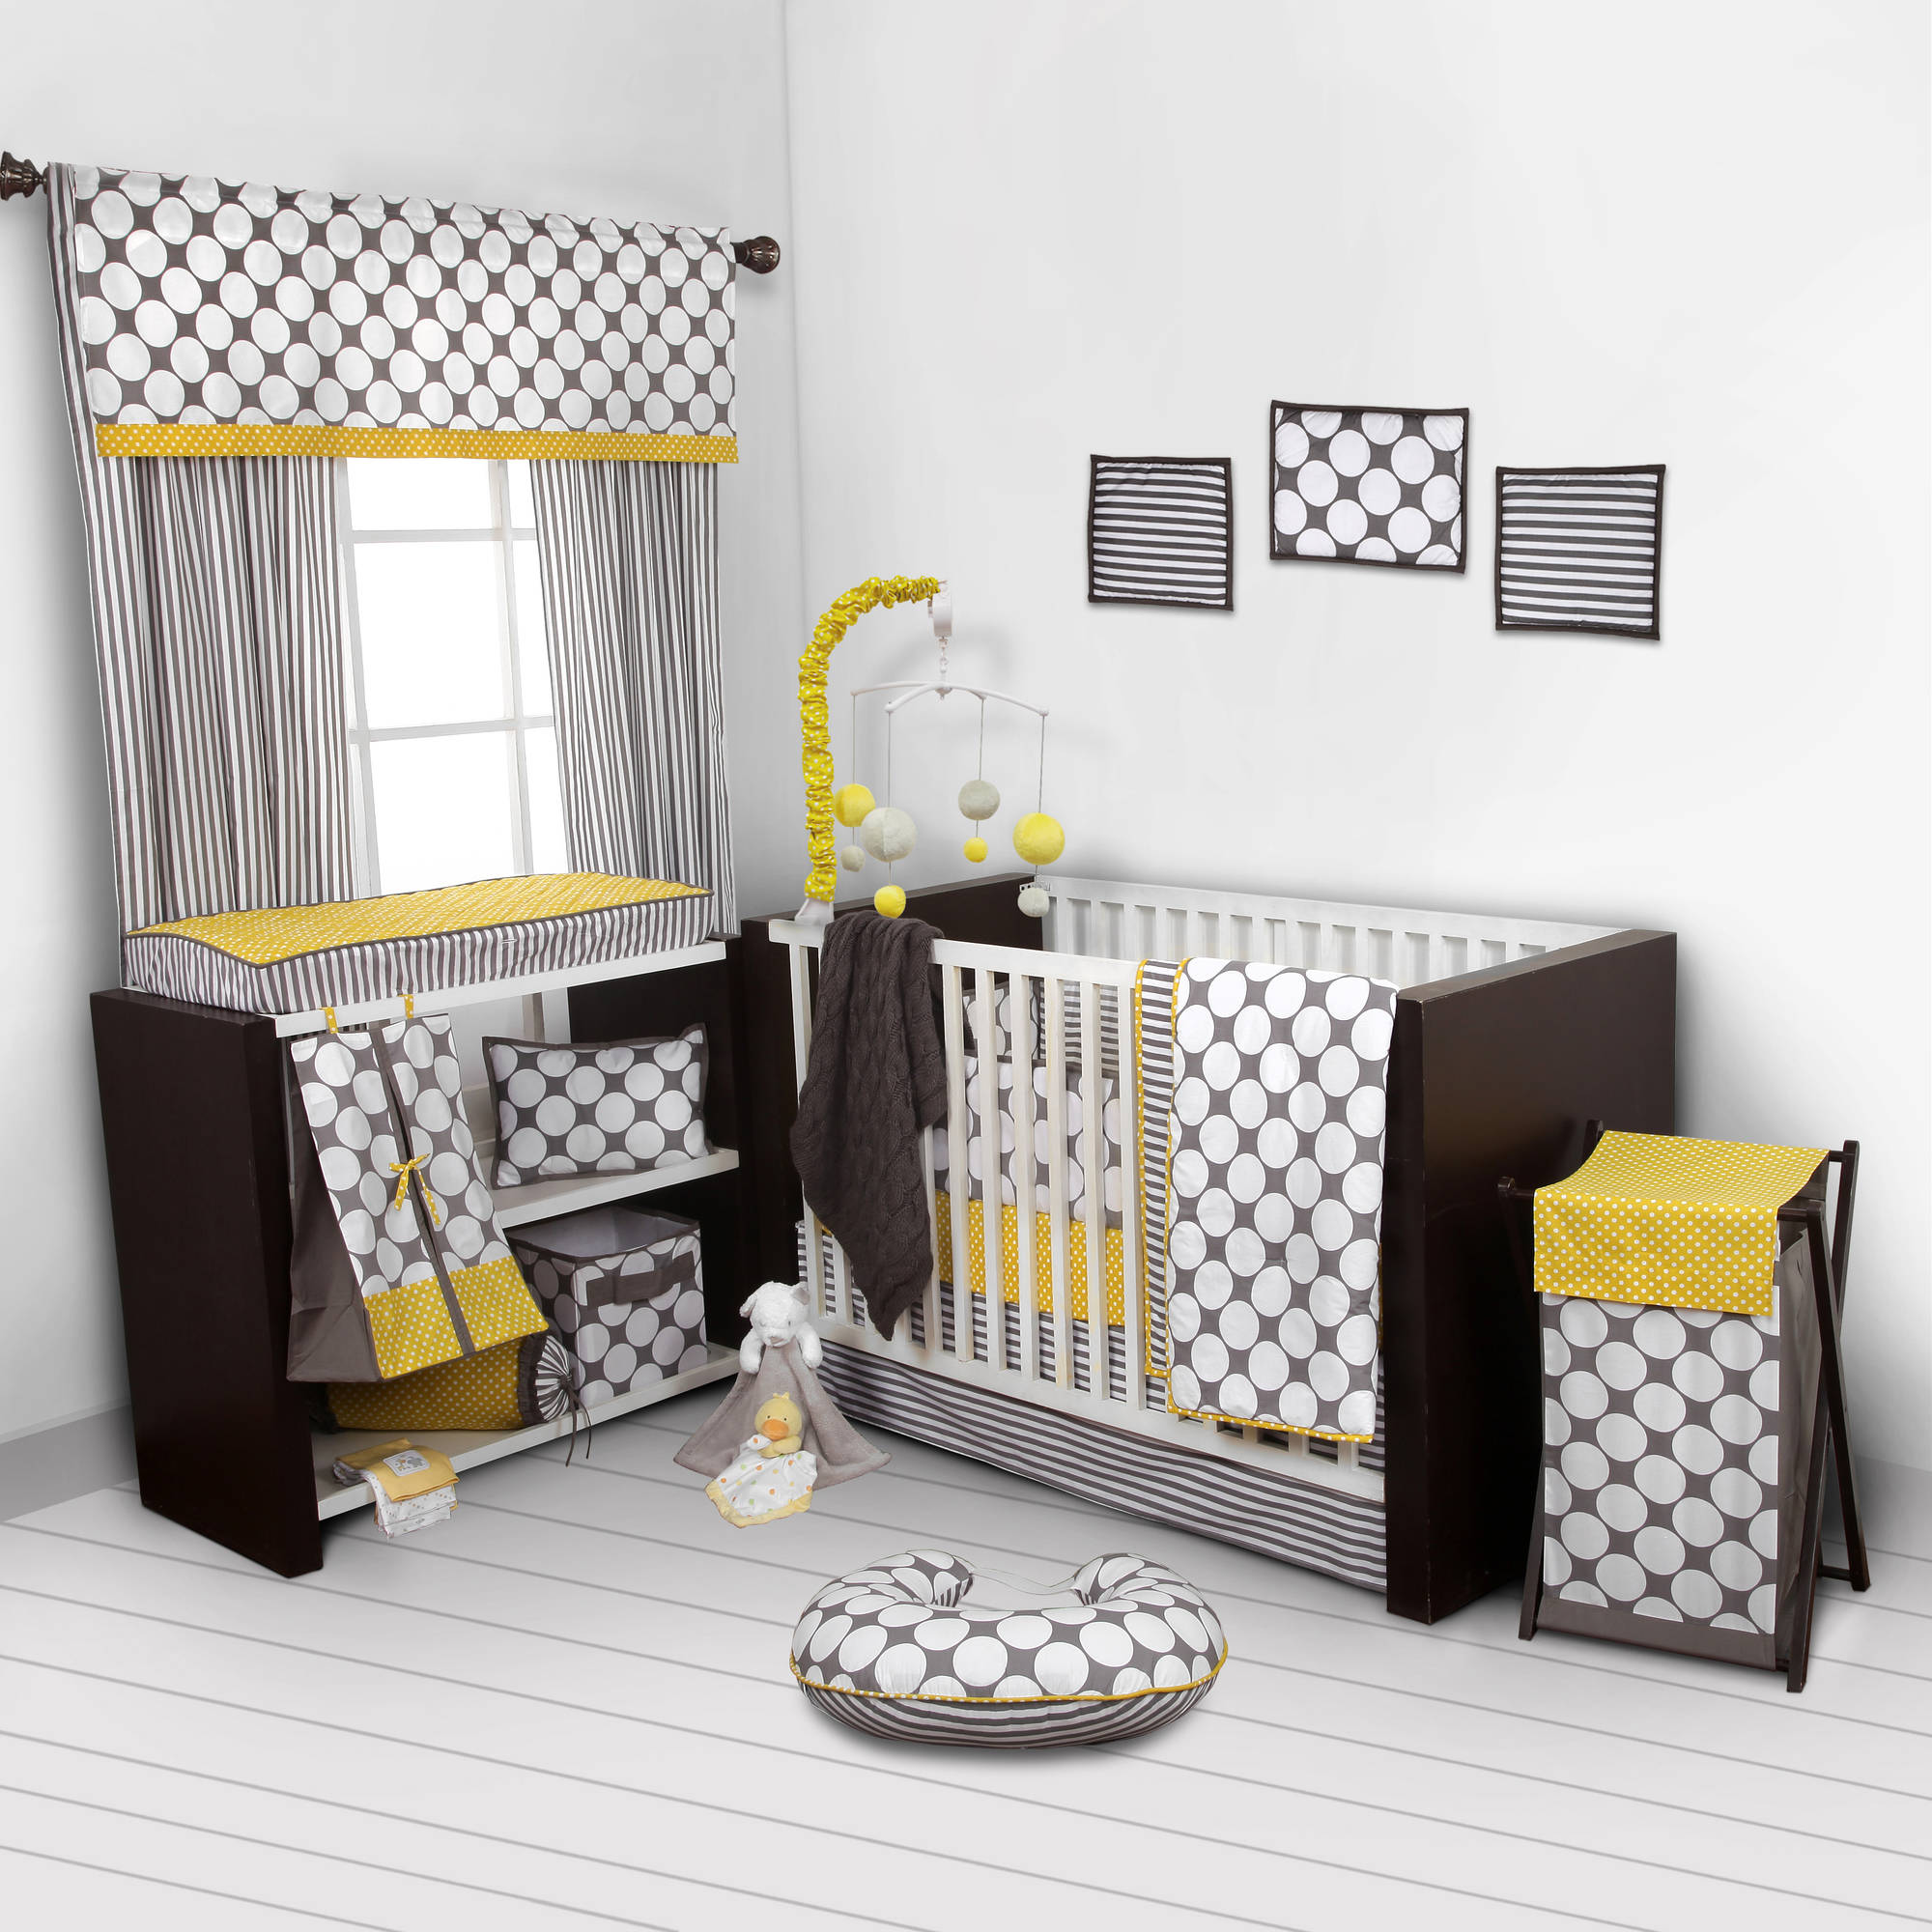 Bacati Dots/Pin Stripes Gray/Yellow 10-Piece Nursery in a Bag Crib Bedding Set with Bumper Pad for US standard Cribs